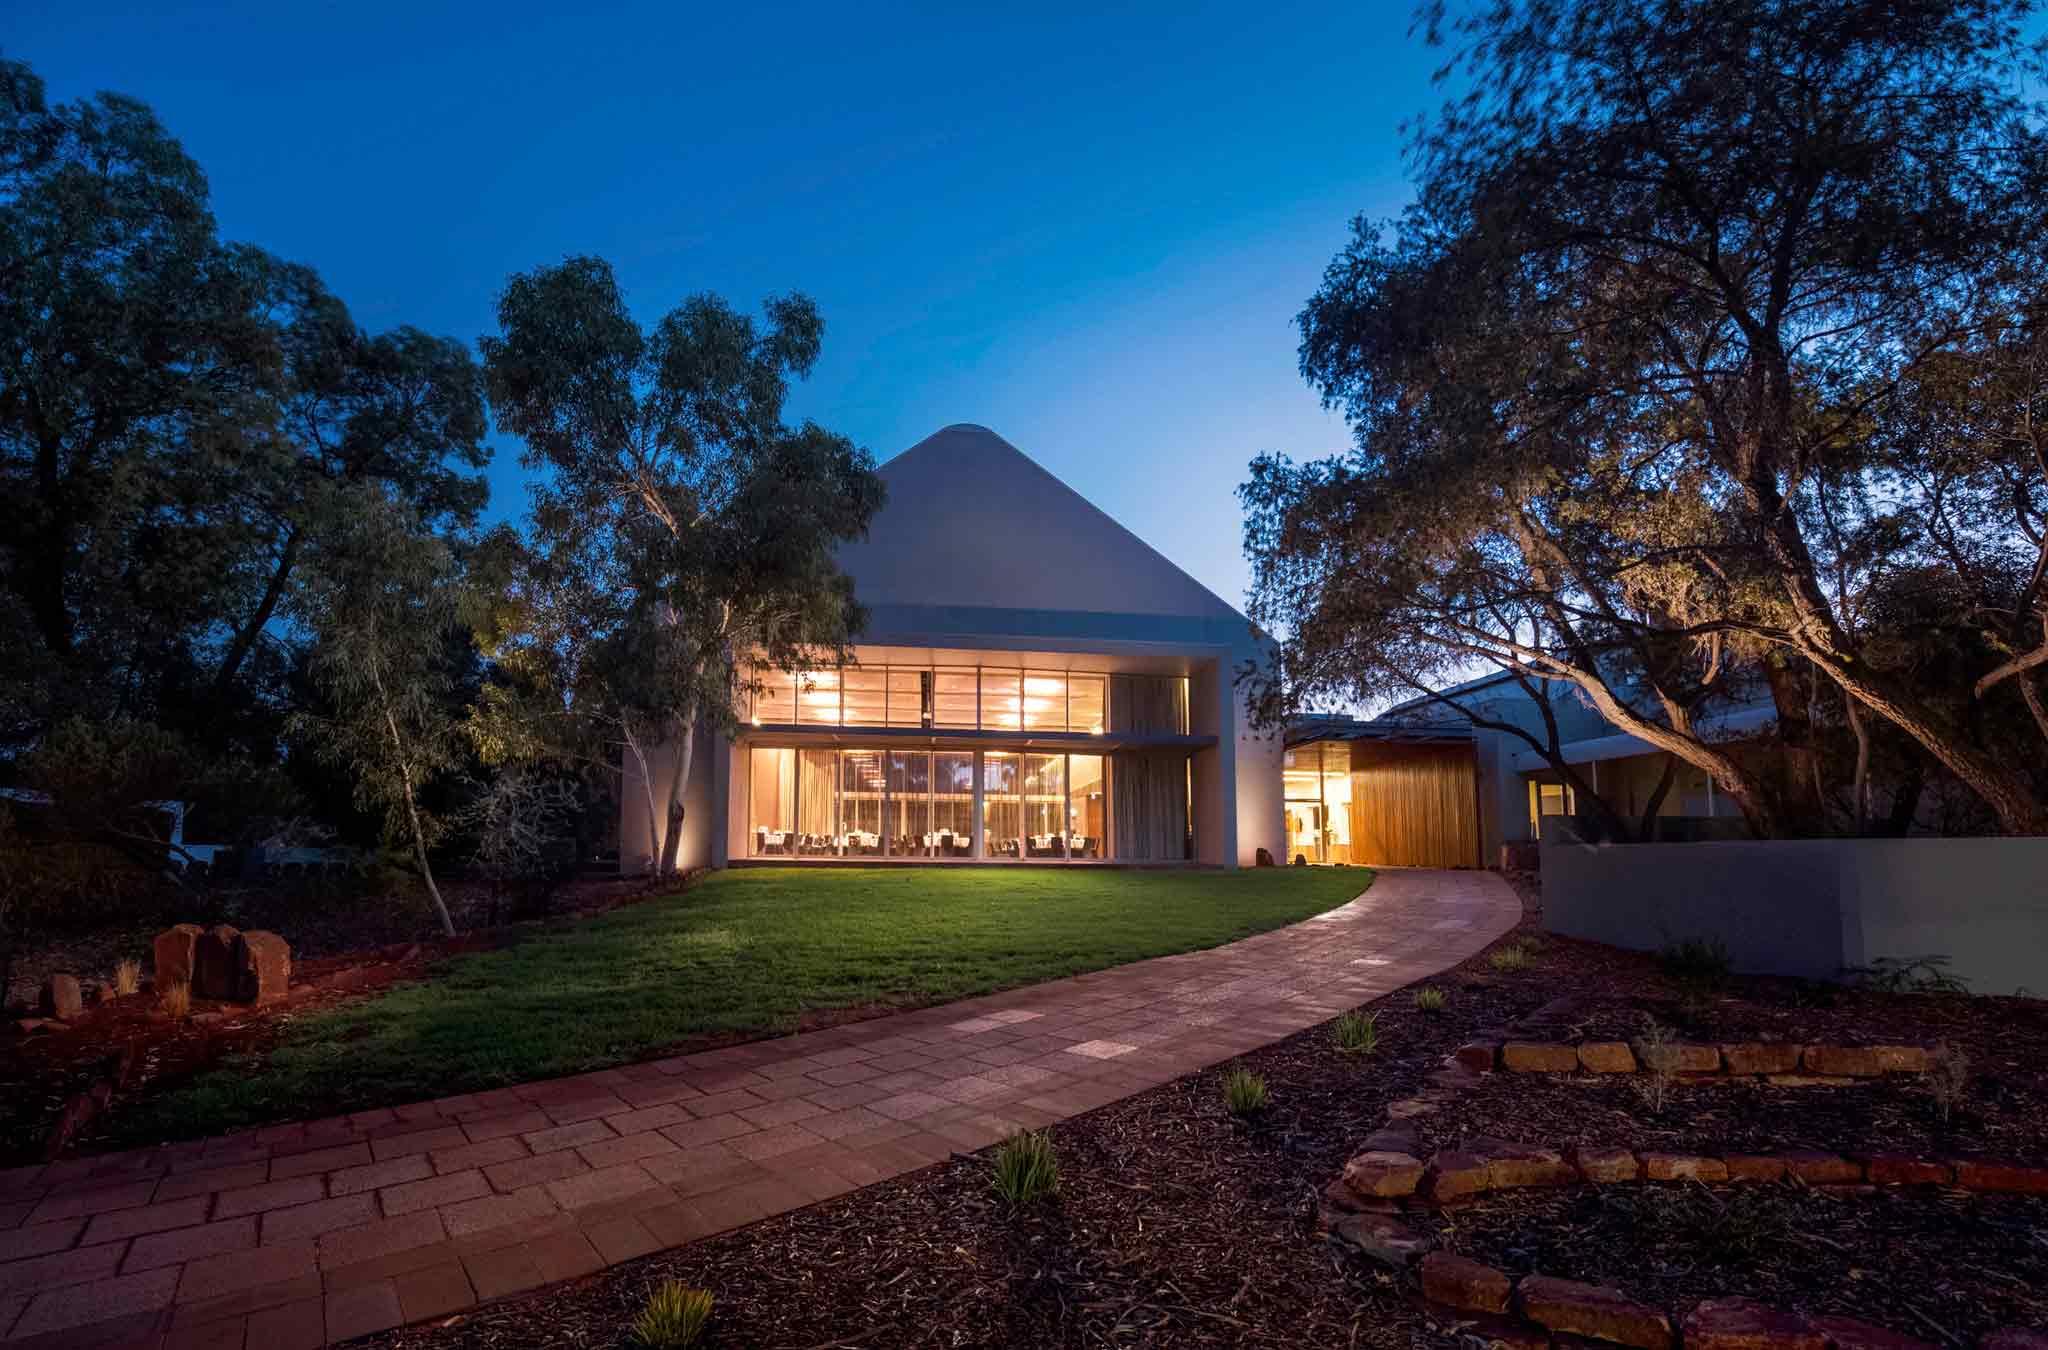 Otel – Outback Pioneer a member of ibis Styles